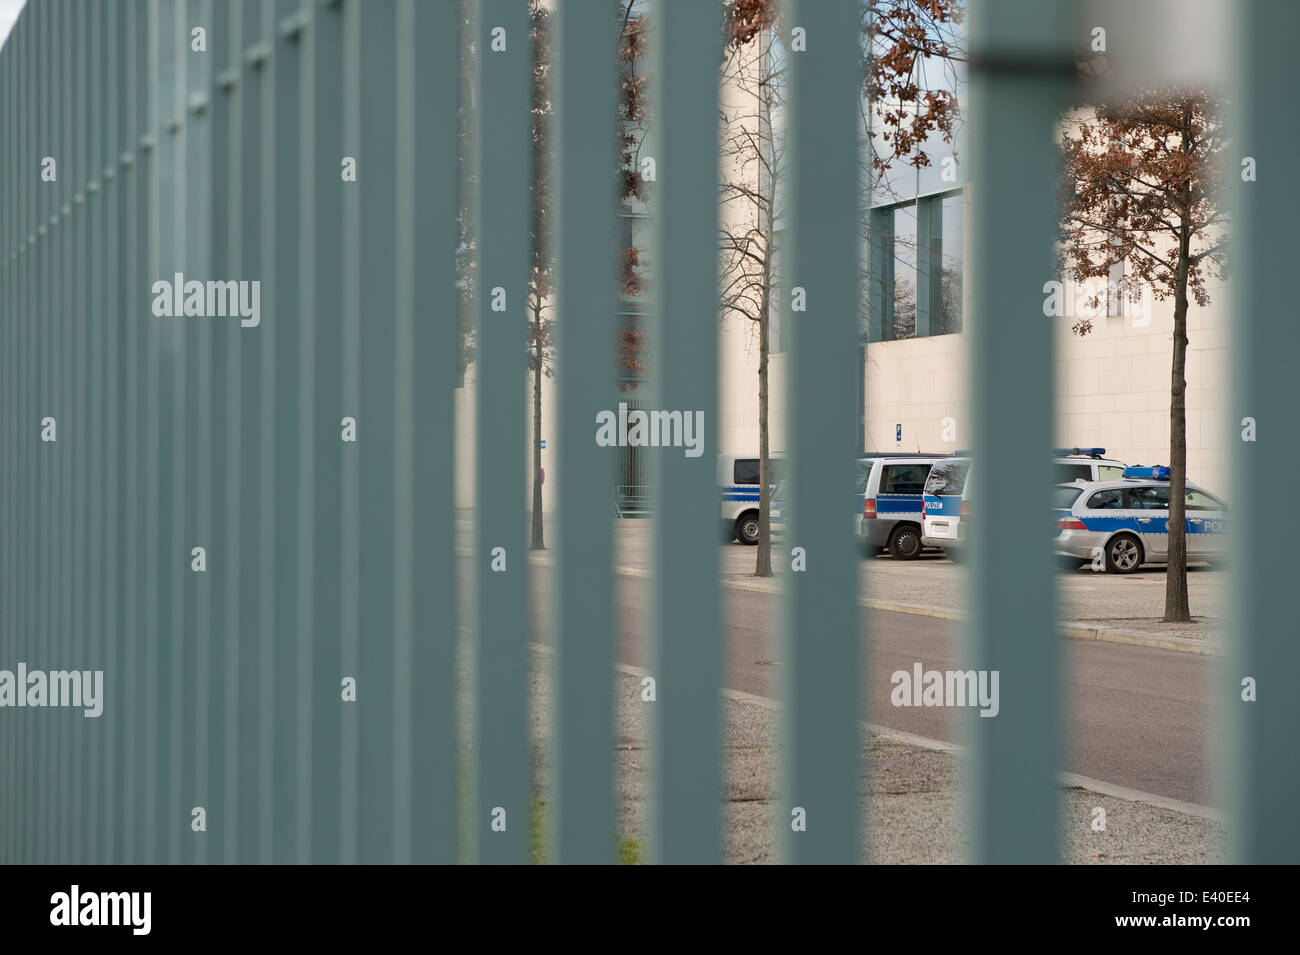 Germany, Berlin, police cars parking on closed area of chancellor's office - Stock Image